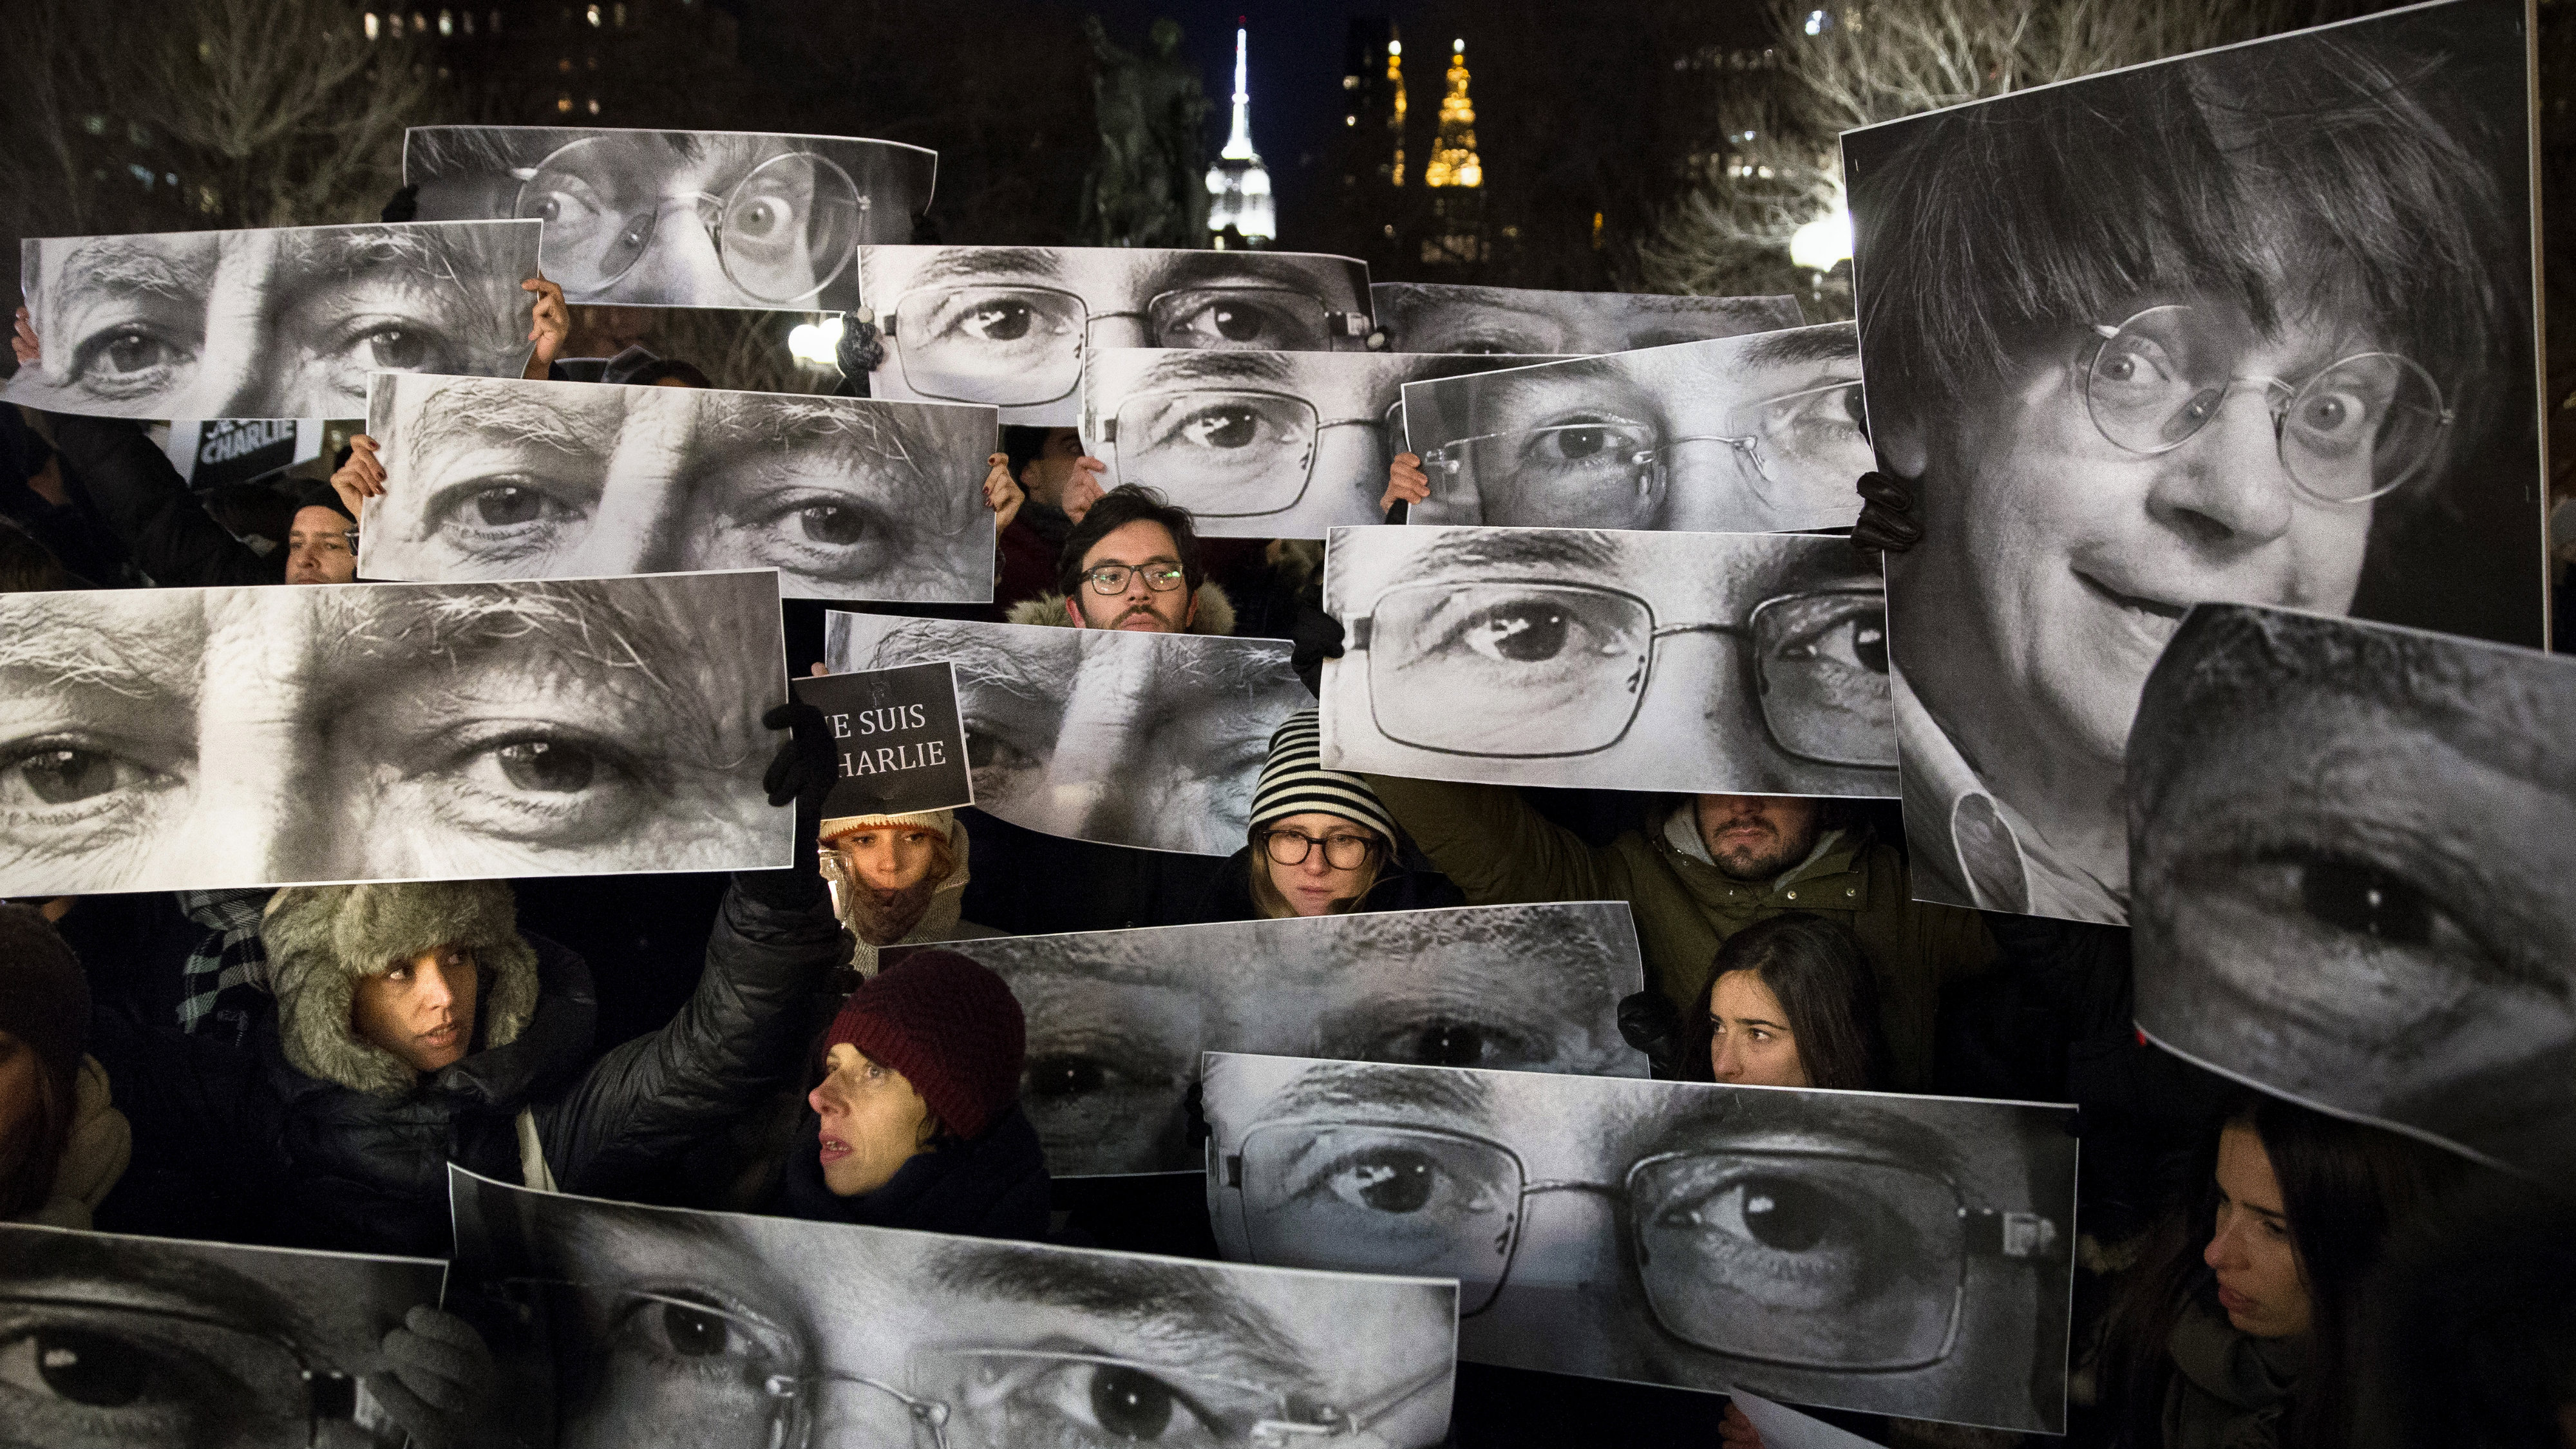 AP10ThingsToSee - Mourners hold signs depicting victim's eyes during a rally in support of Charlie Hebdo, a French satirical weekly newspaper that fell victim to an terrorist attack, Wednesday, Jan. 7, 2015, at Union Square in New York. French officials said 12 people were killed when masked gunmen stormed the Paris offices of the periodical that had caricatured the Prophet Muhammad.